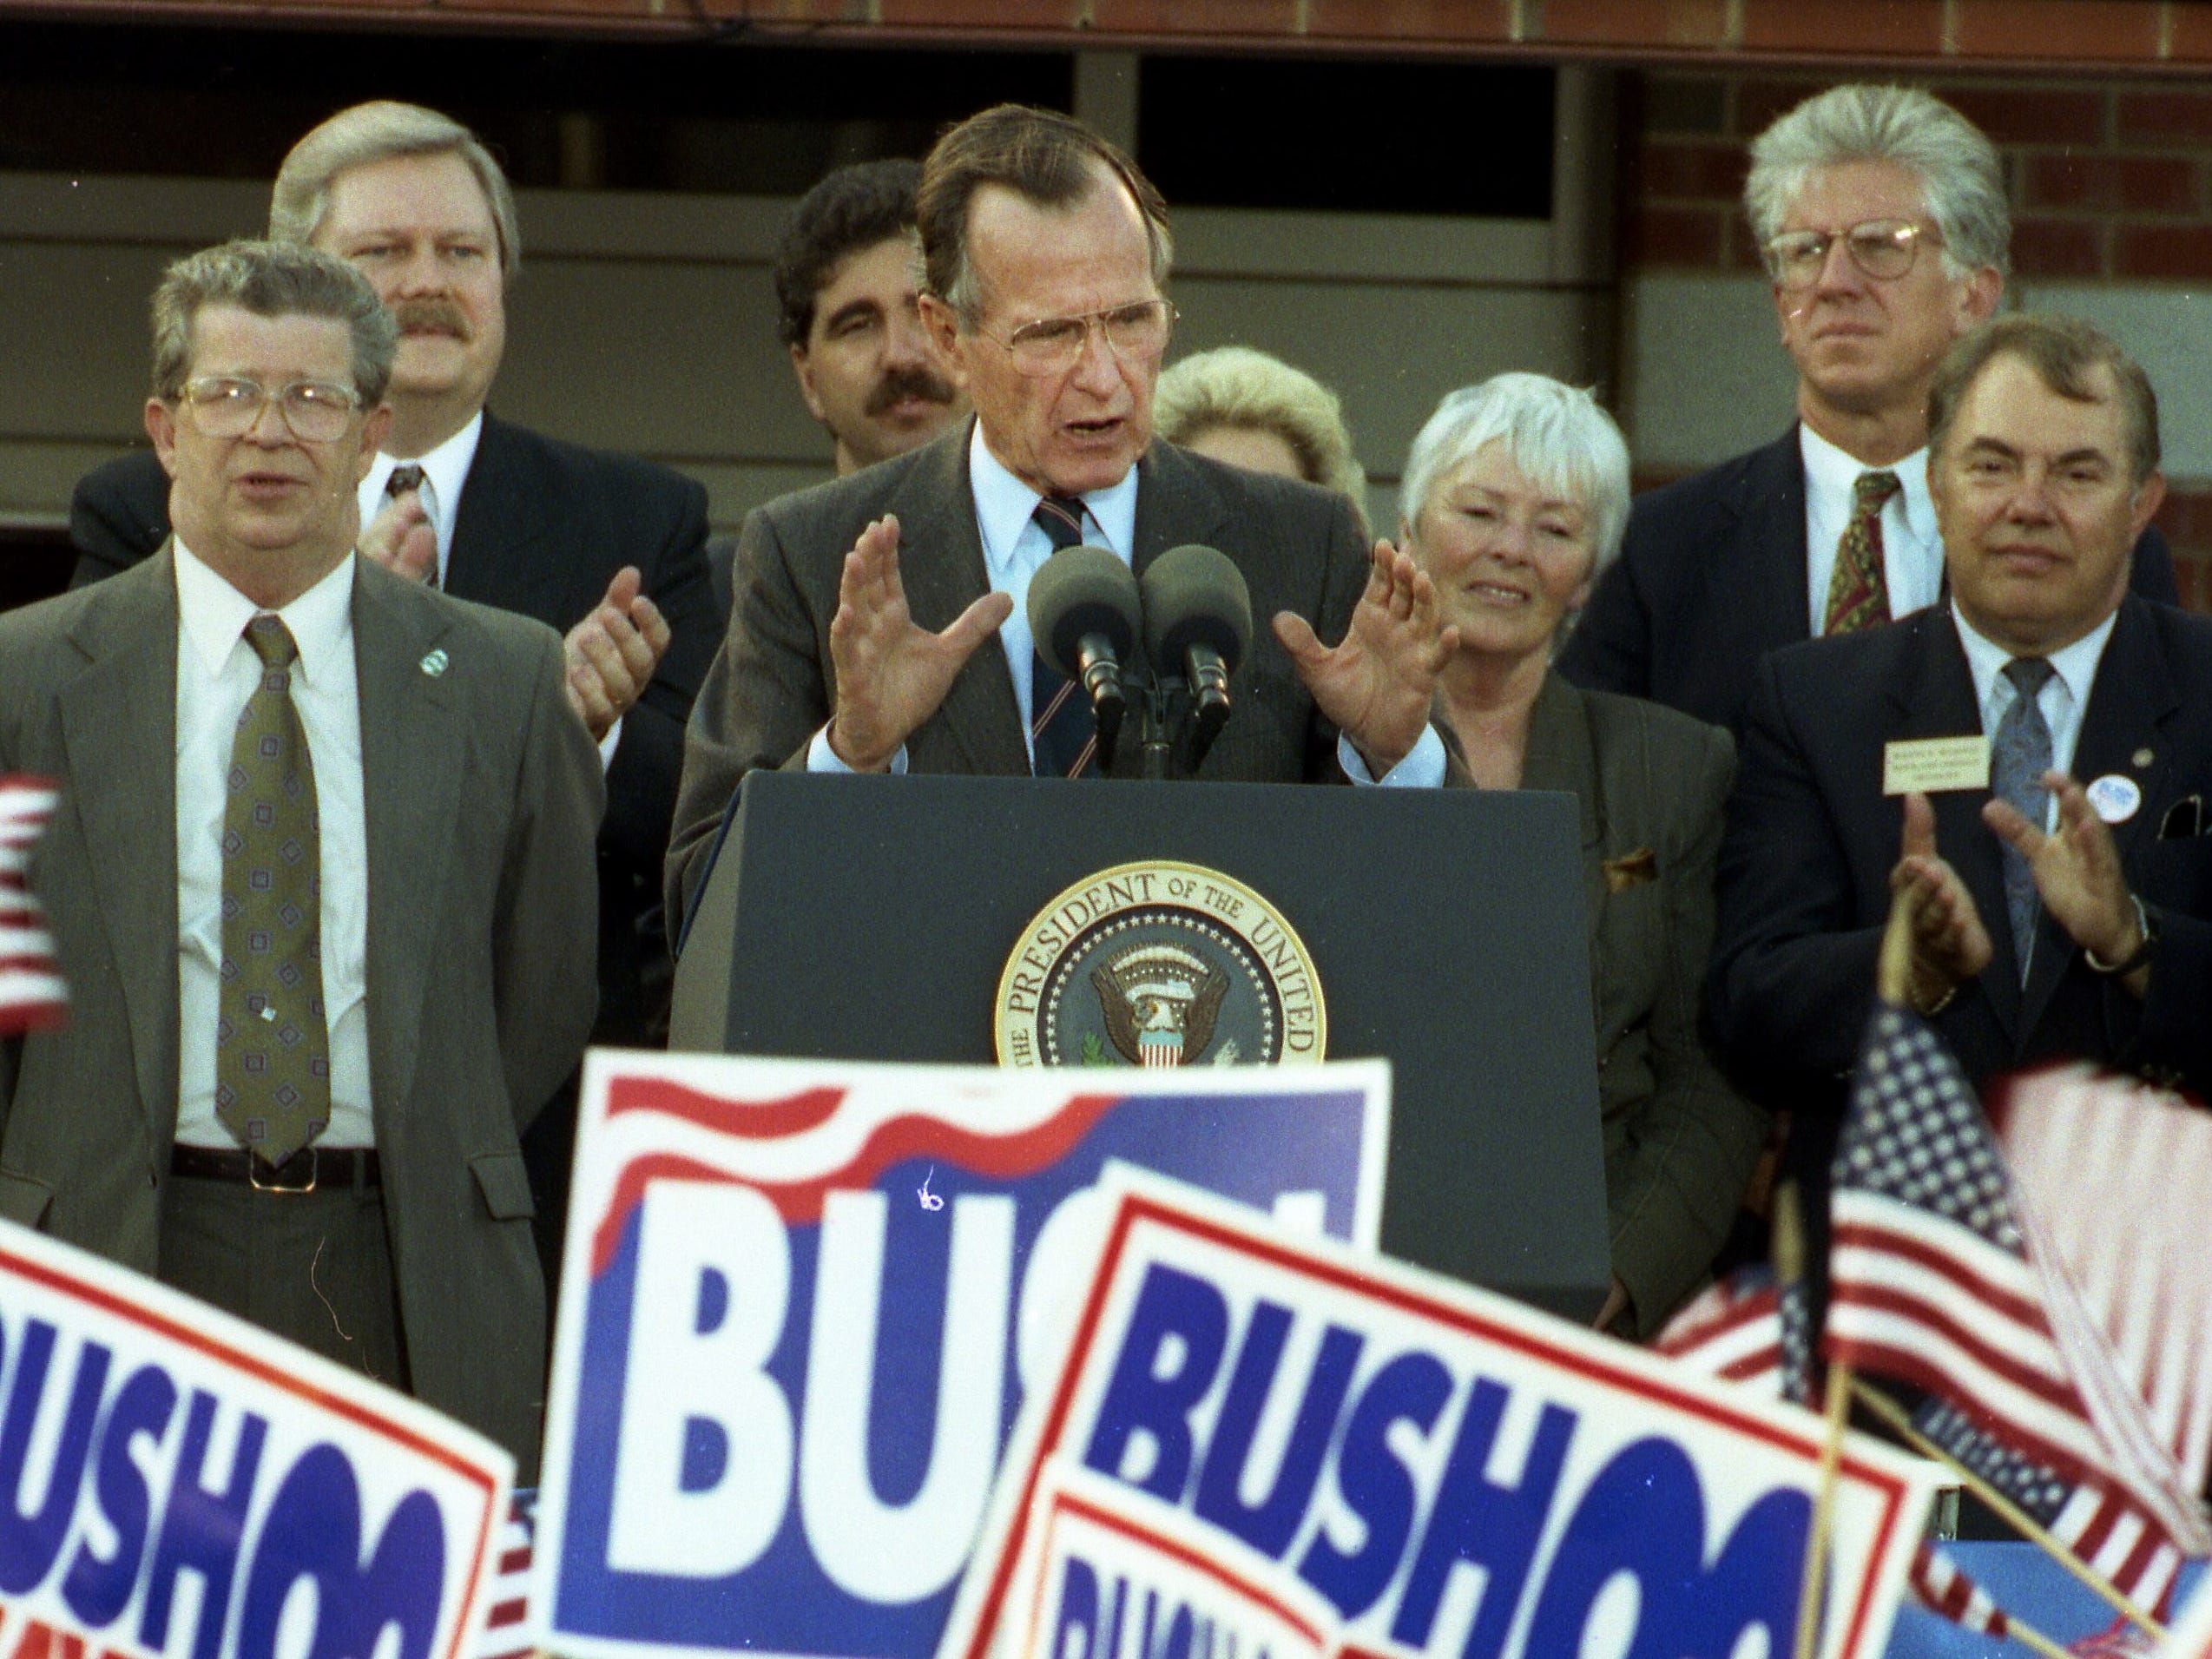 President George HW Bush speaks druing a campaign rally at Middlesex County College in Edison, NJ, on October 16, 1992.